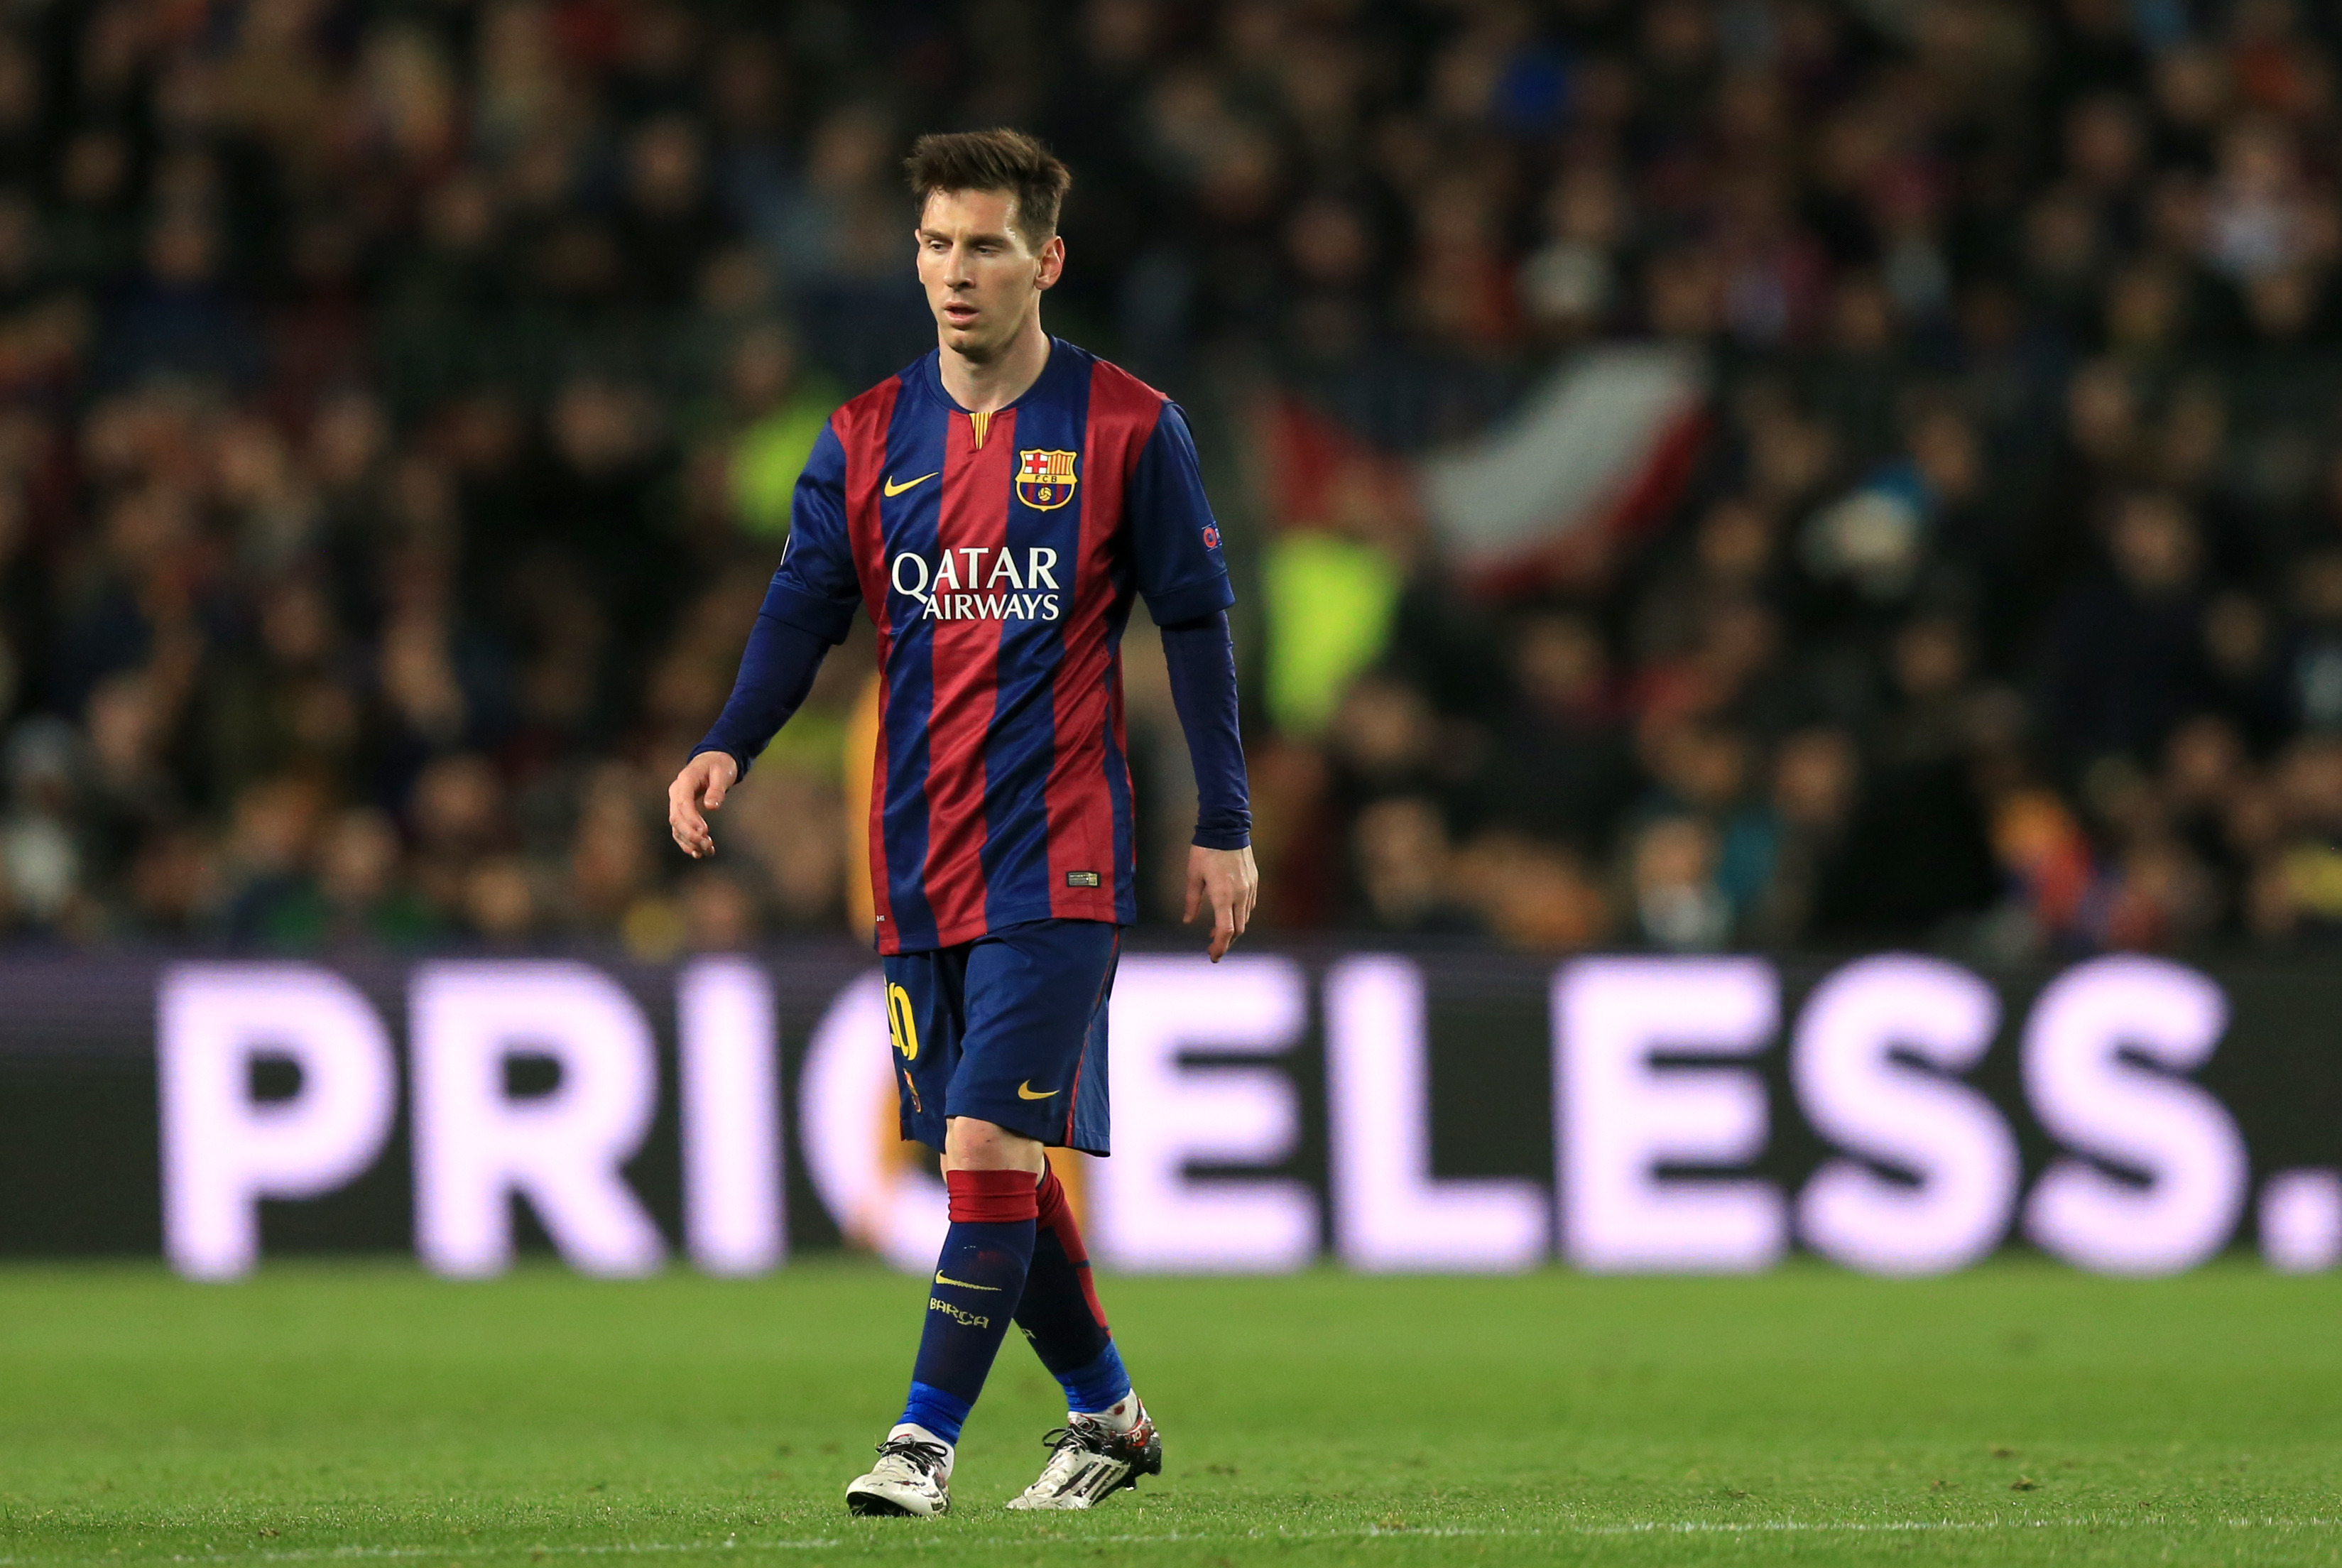 WATCH A pilation Leo Messi Destroying Premier League Teams